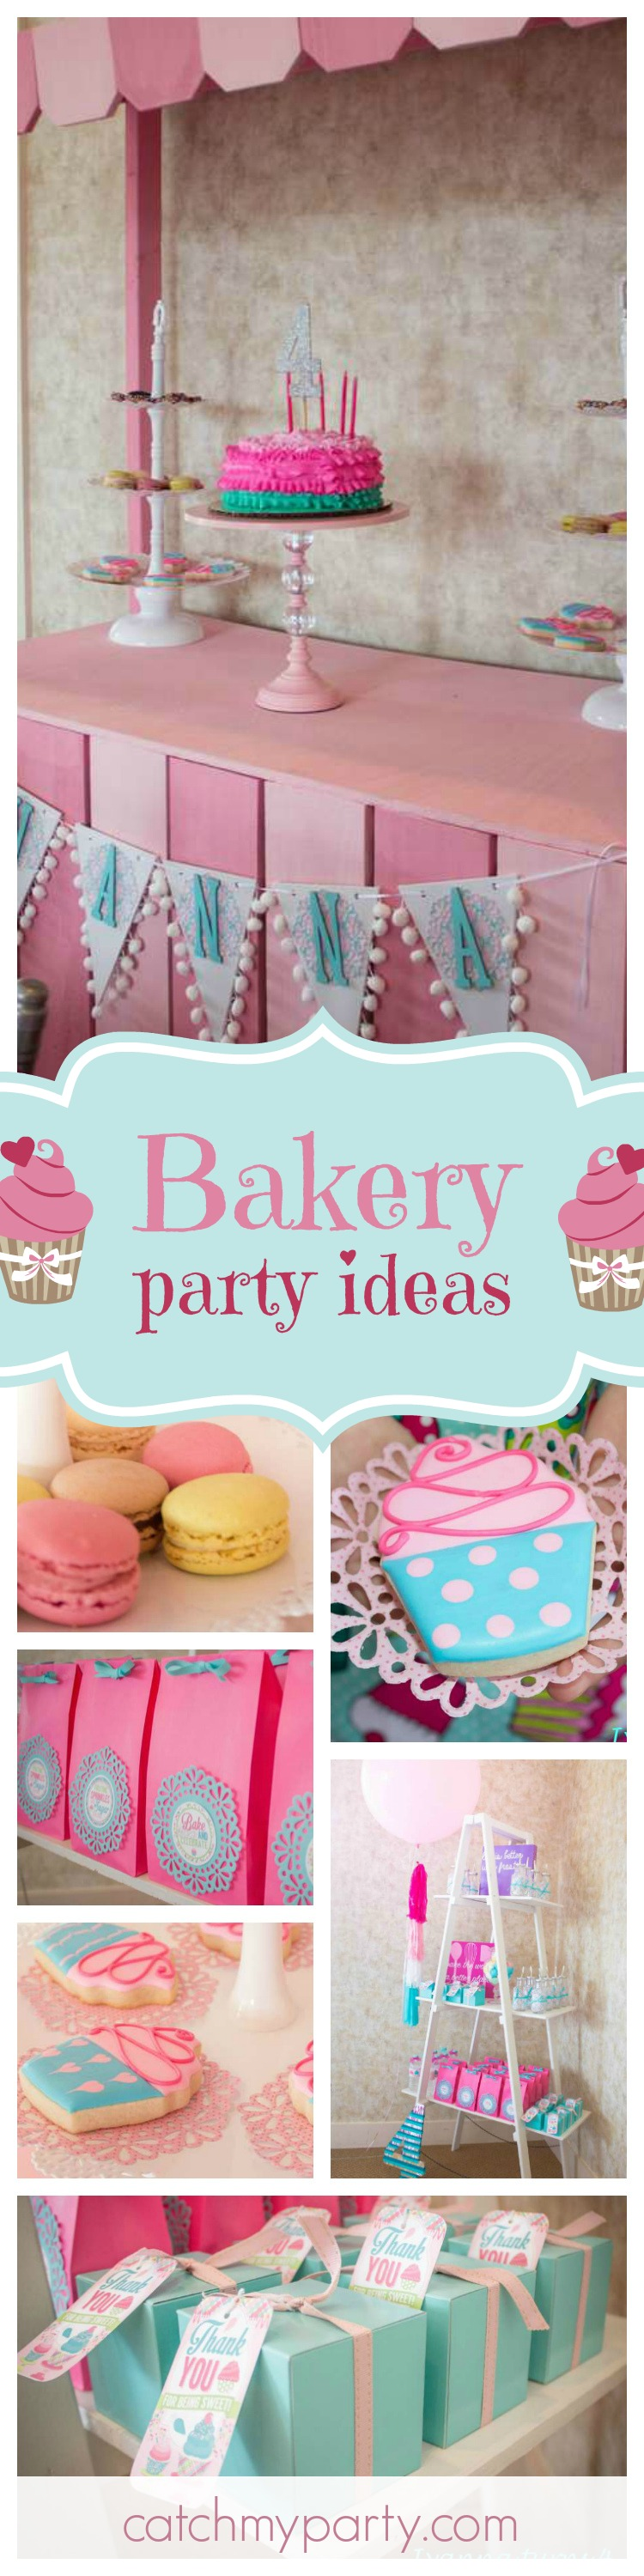 You can almost smell the delicious freshly baked cupcakes and cookies at this scrumptious little girls Bakery birthday party! See more party ideas and share yours at CatchMyParty.com